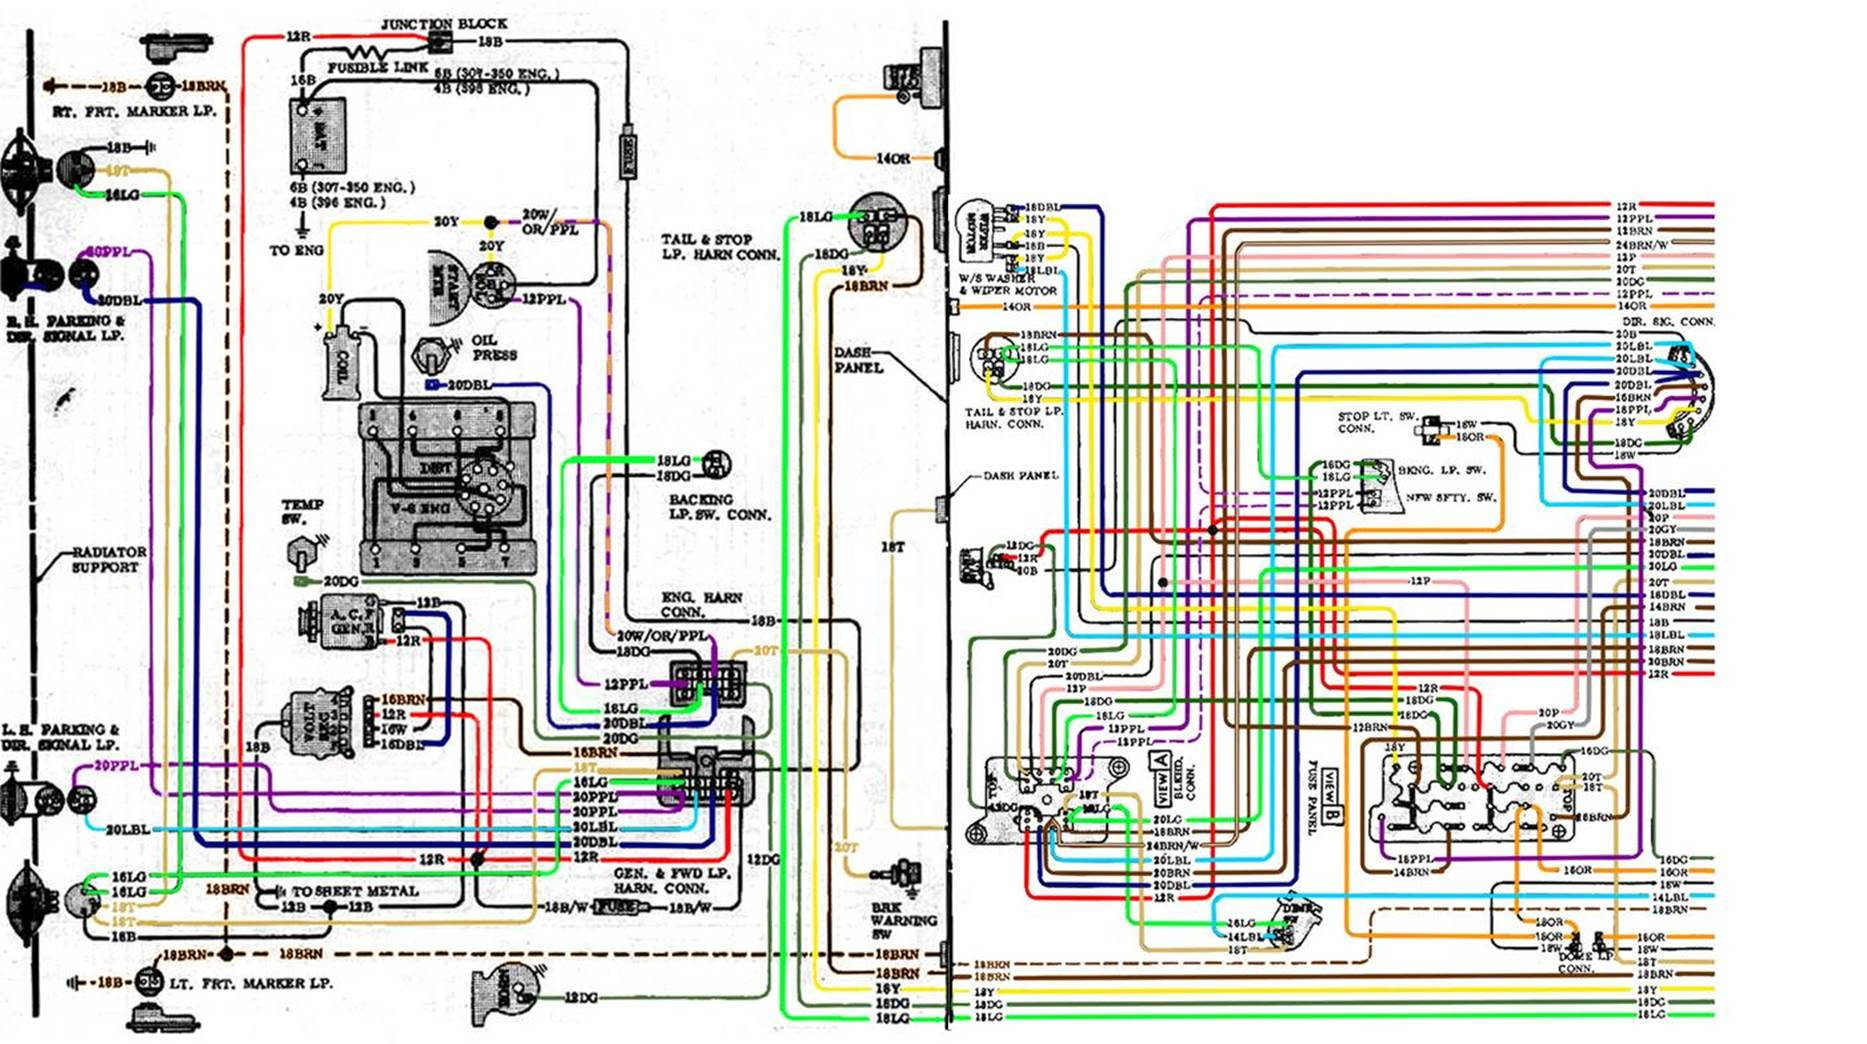 image002 68 chevelle wiring diagram 69 chevelle wiring schematic \u2022 wiring  at alyssarenee.co